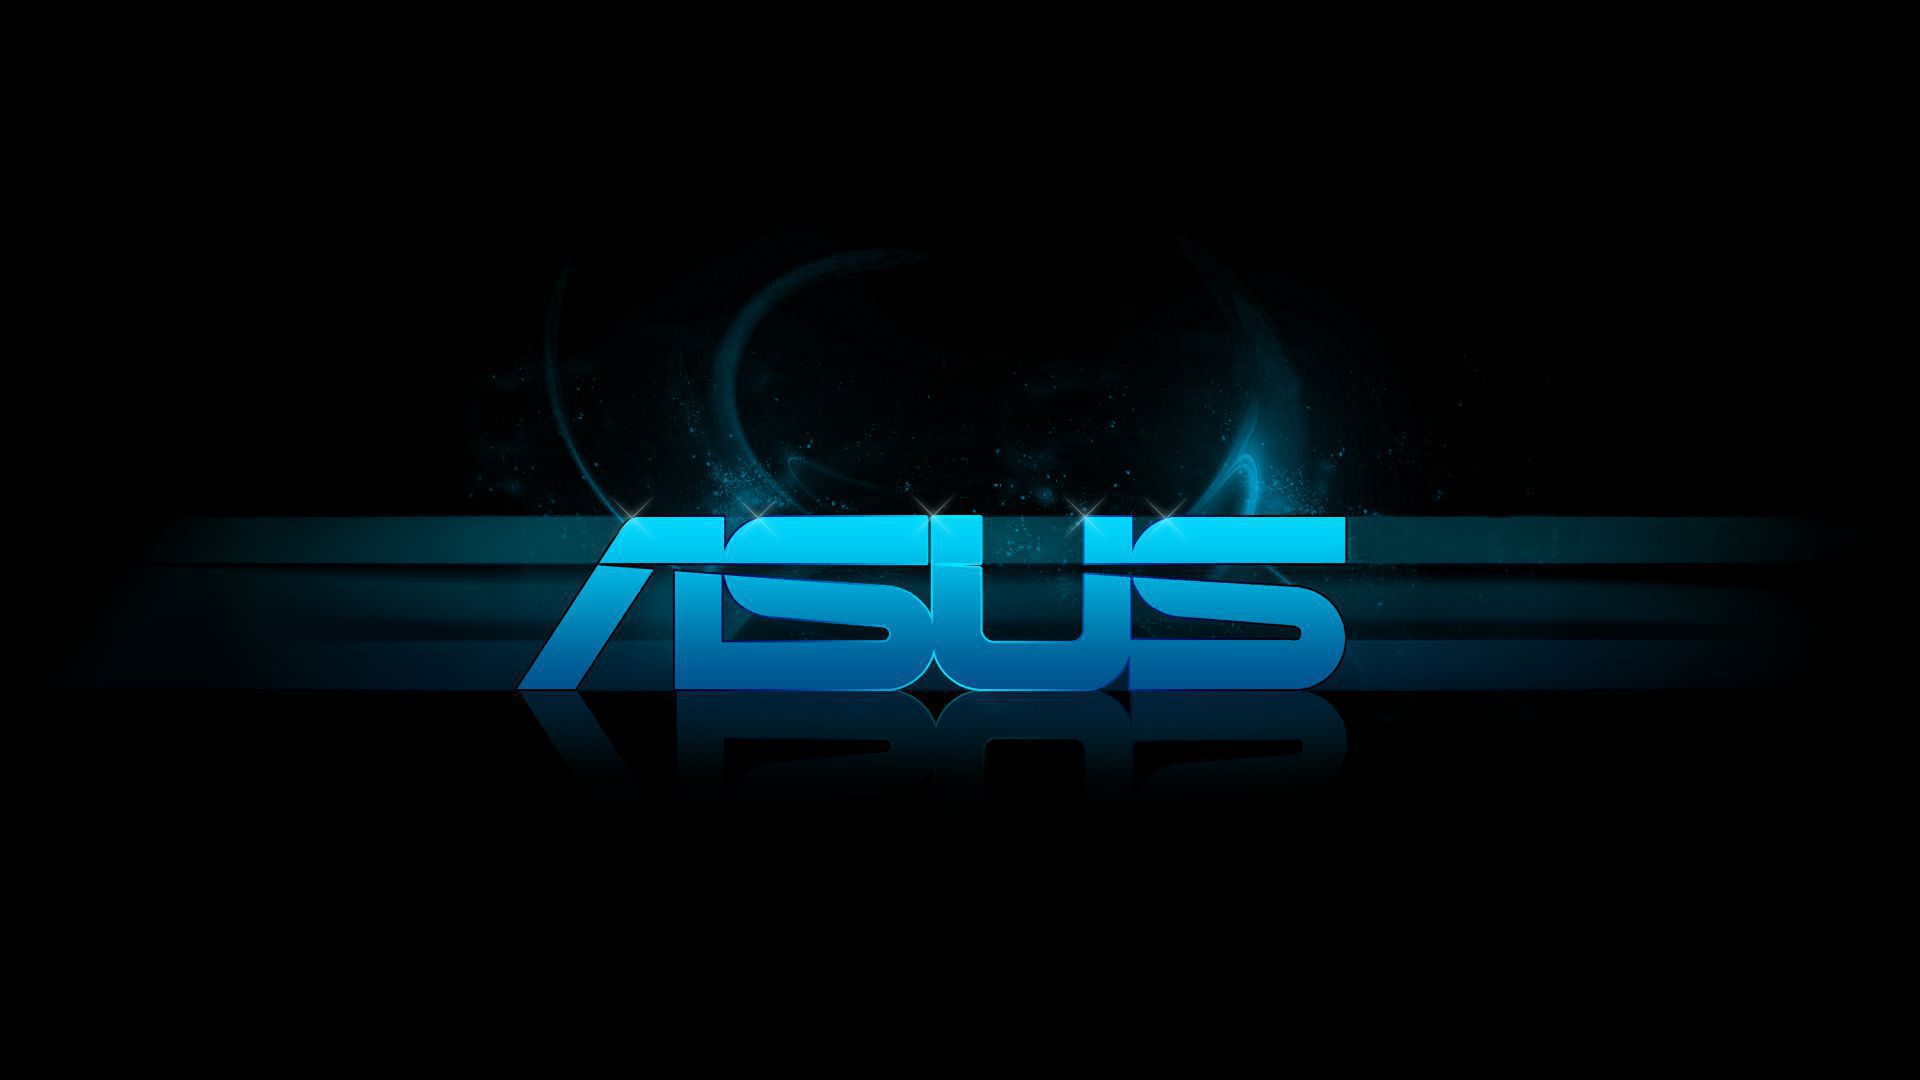 Asus In High Resolution